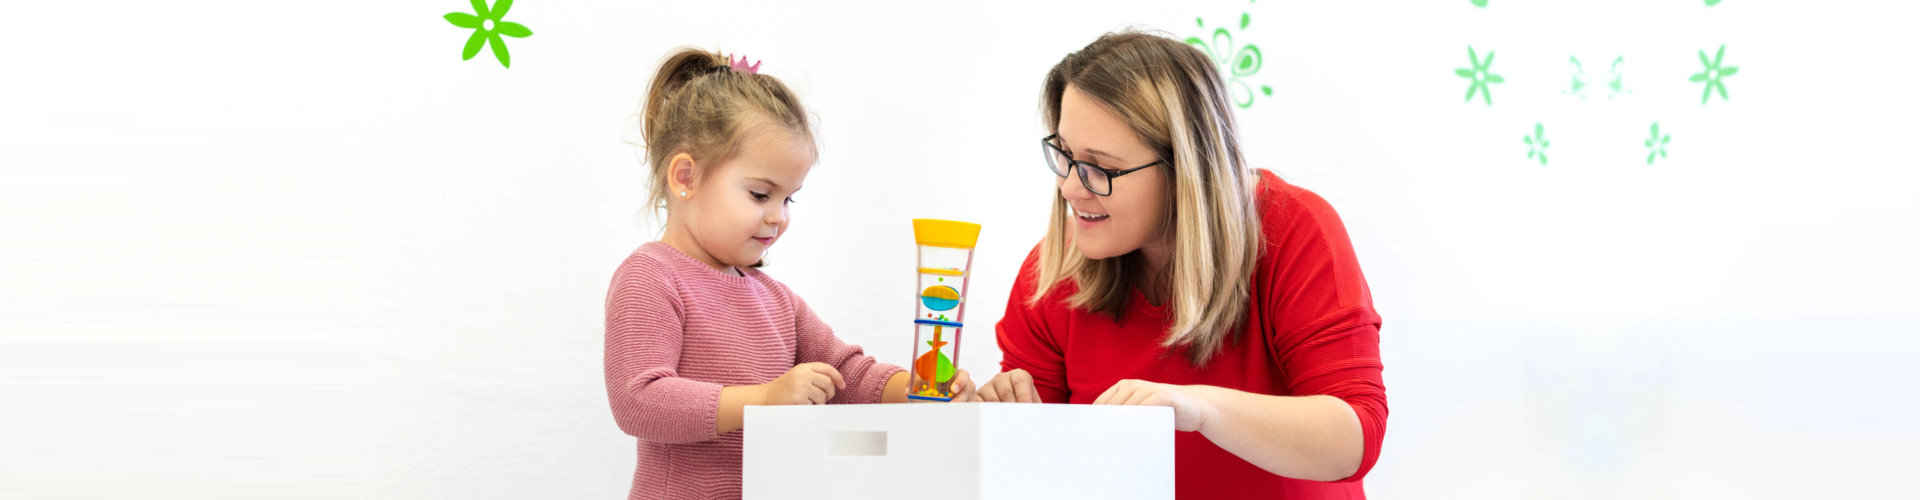 little girl playing toys with teacher